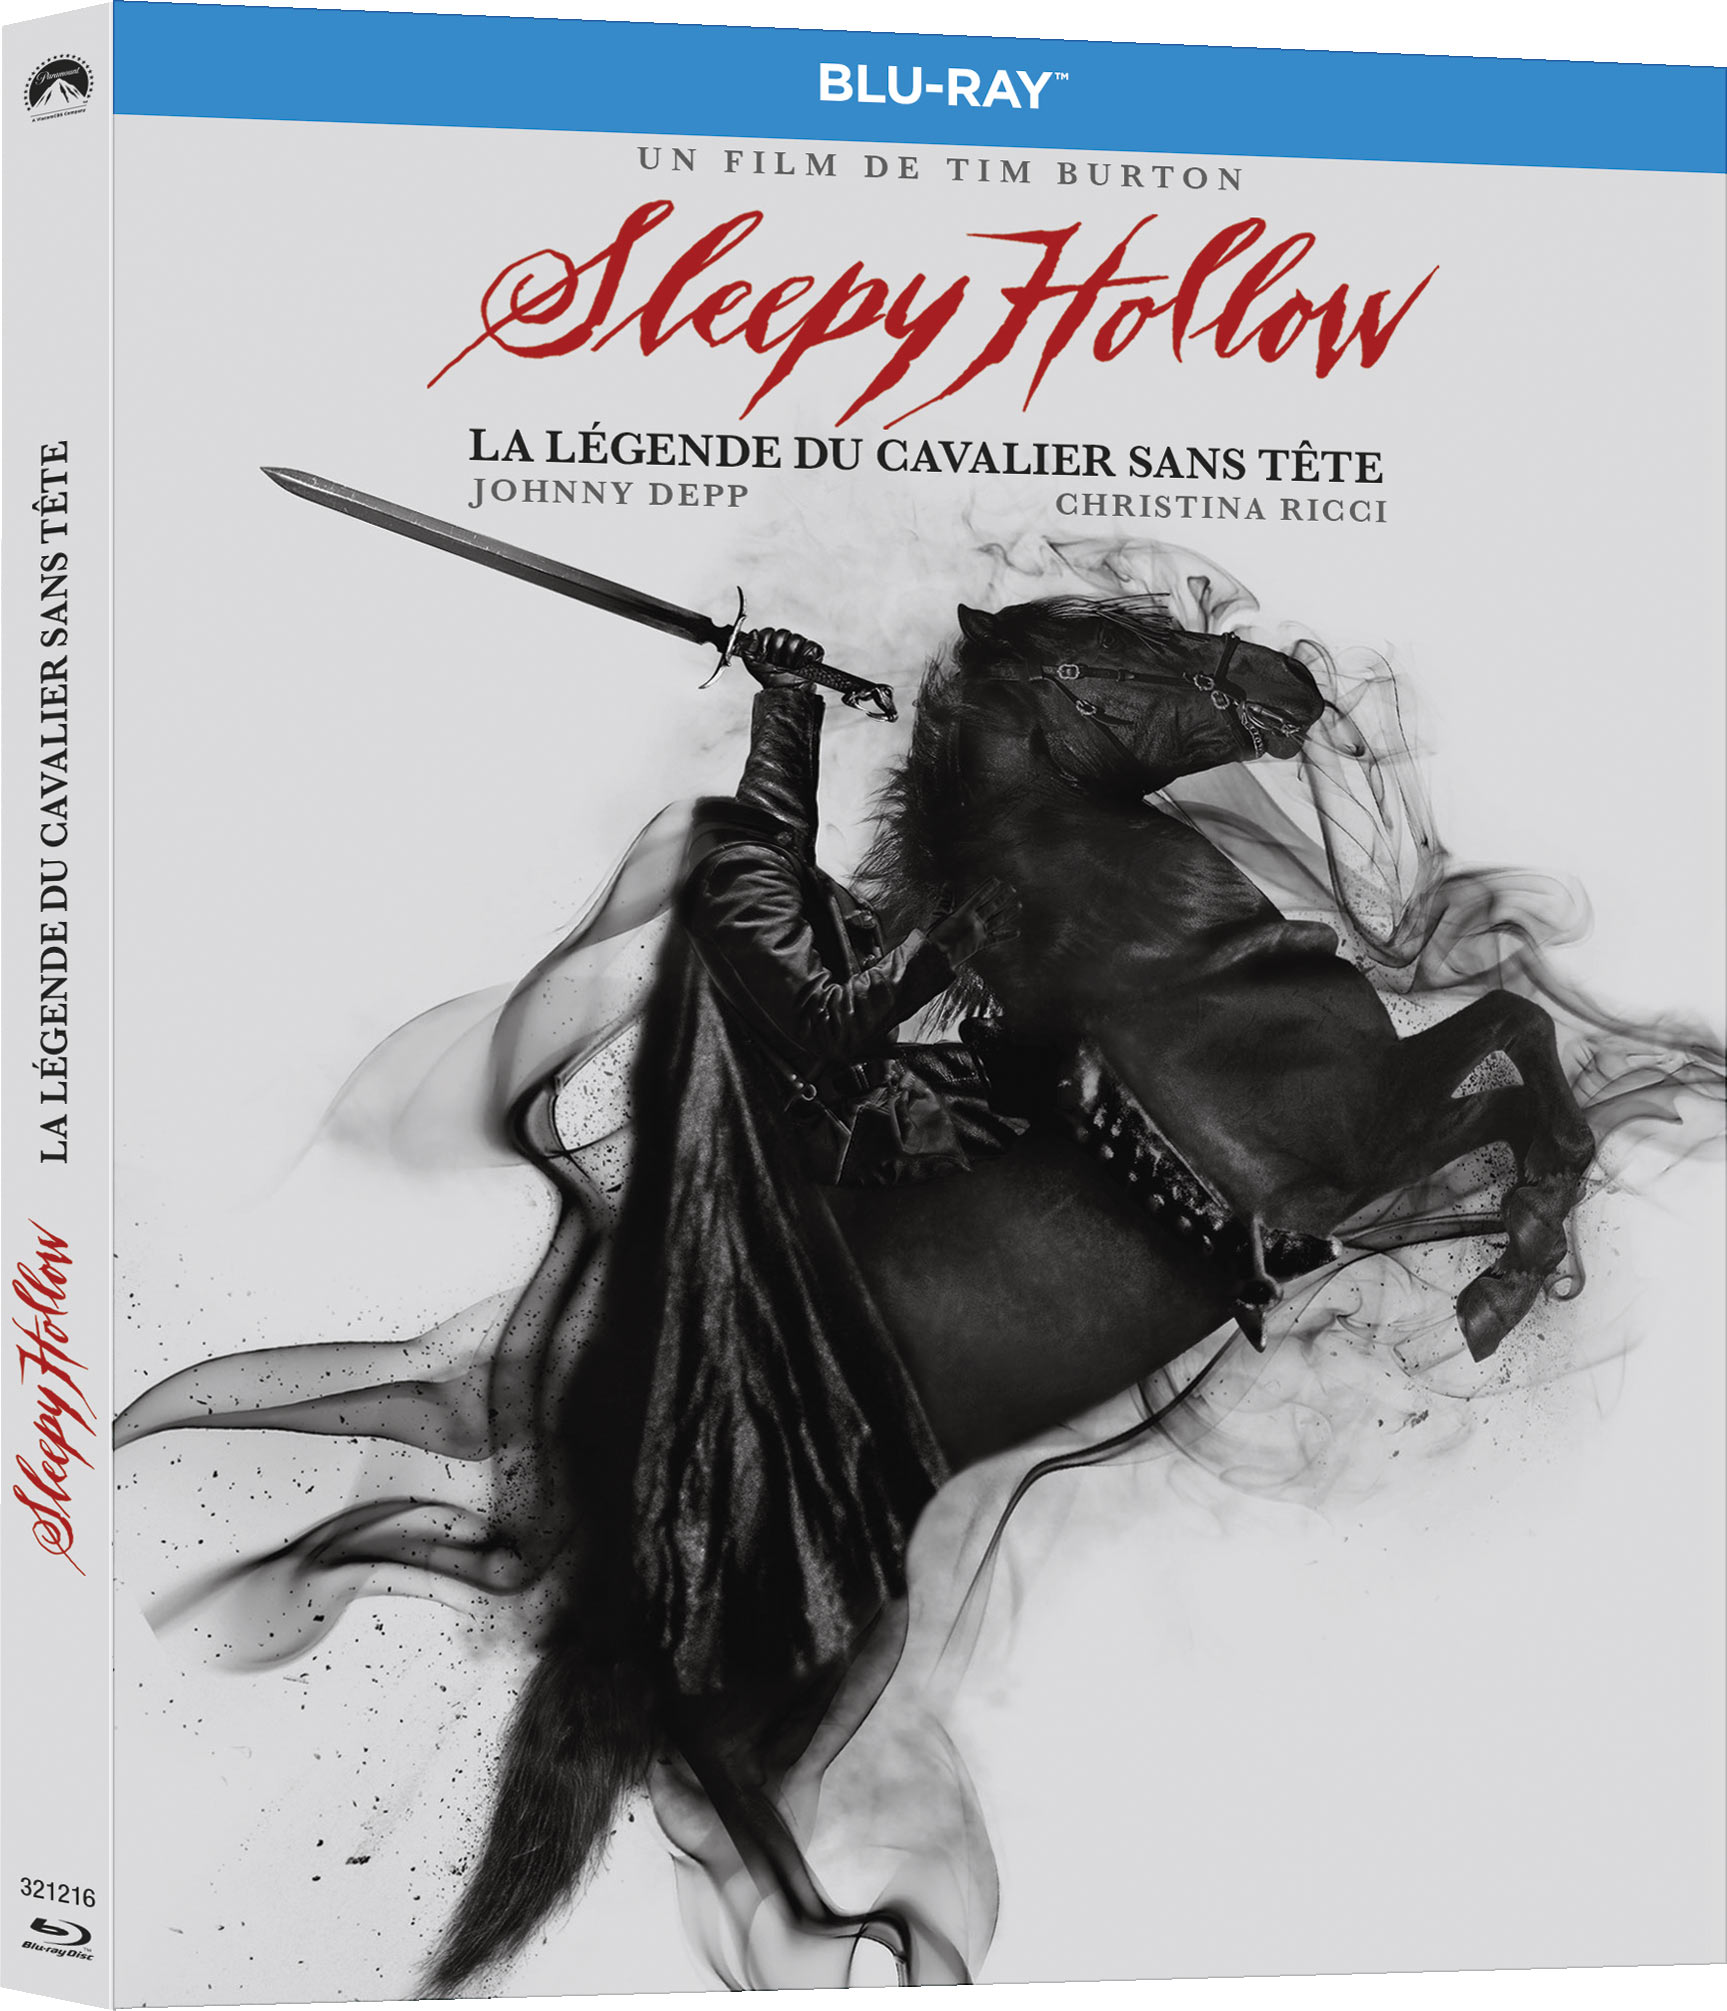 SLEEPY HOLLOW BRD DGB - BRD